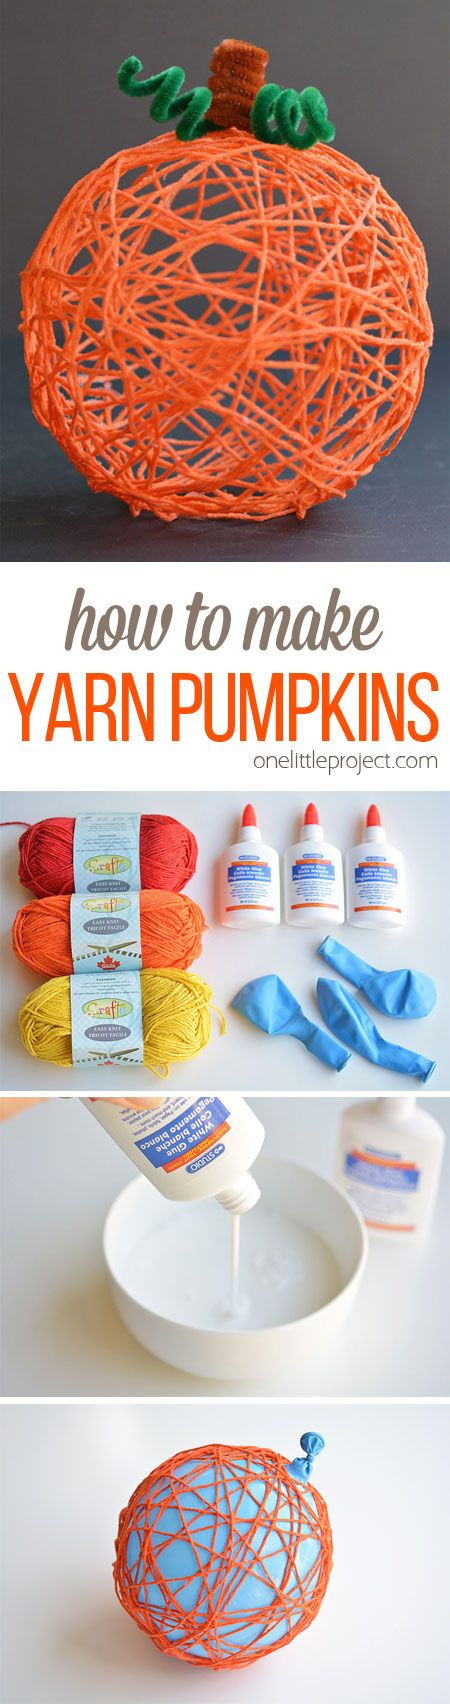 Kid Fall Craft Ideas Part - 31: How To Make Yarn Pumpkins Using Balloons. Halloween DiyHaloween CraftHalloween  Arts And CraftsKids Fall ...